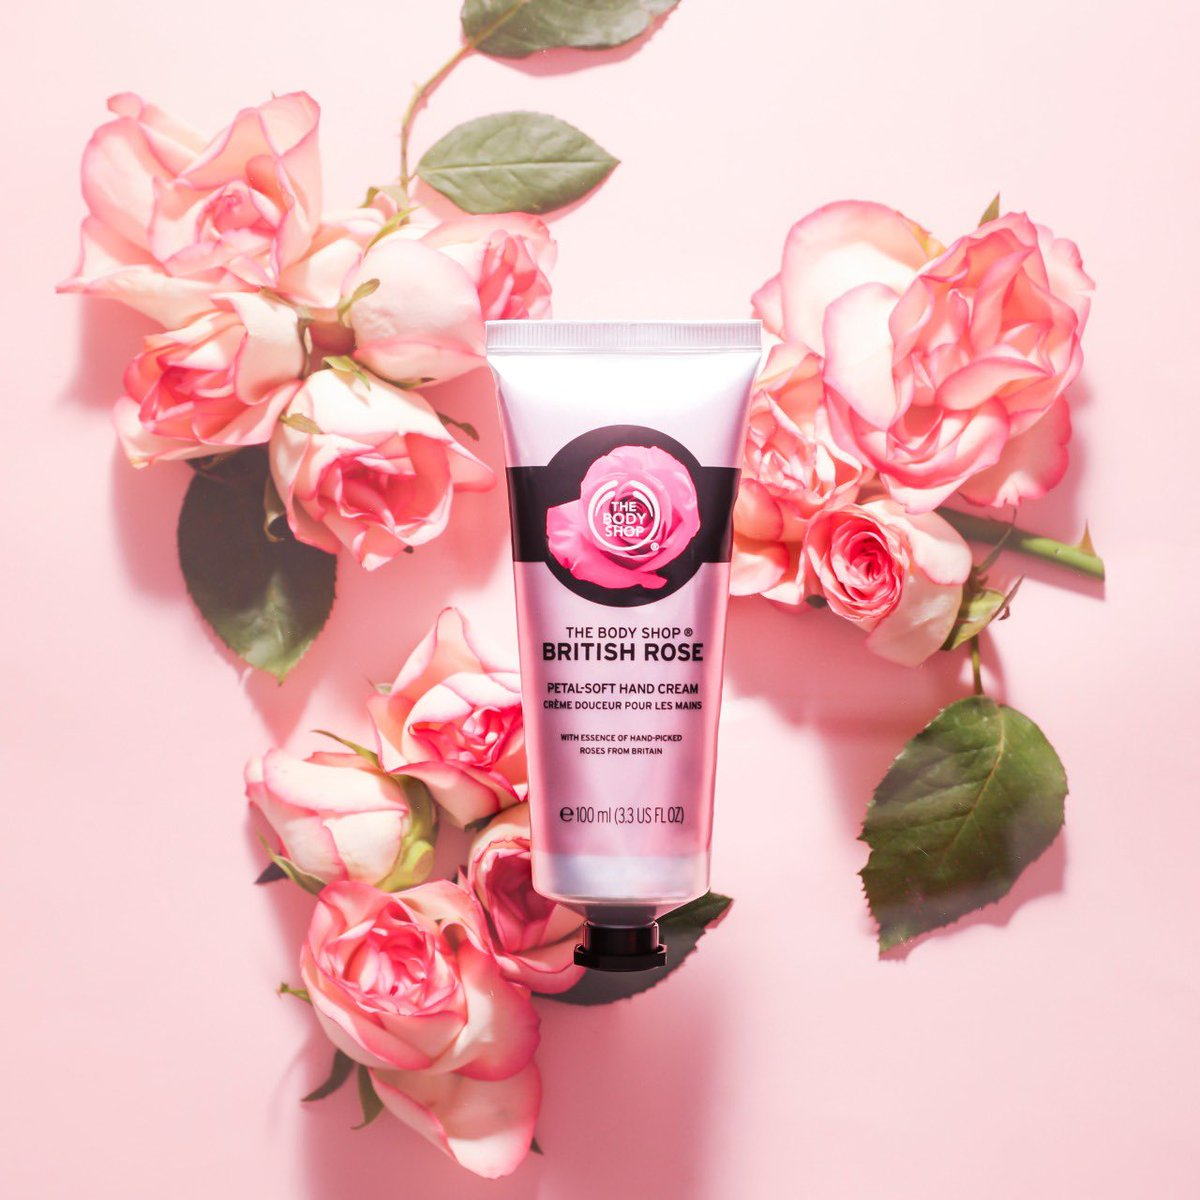 Cocoon your hands in dewy hydration with British Rose hand cream. Infused with the essence of hand-picked British roses, this lightweight hand moisturiser is like carrying a bouquet of beautiful blooms! Shop Online, In-store or via Home Delivery +91-7042004412 #TBSInd #MustHave